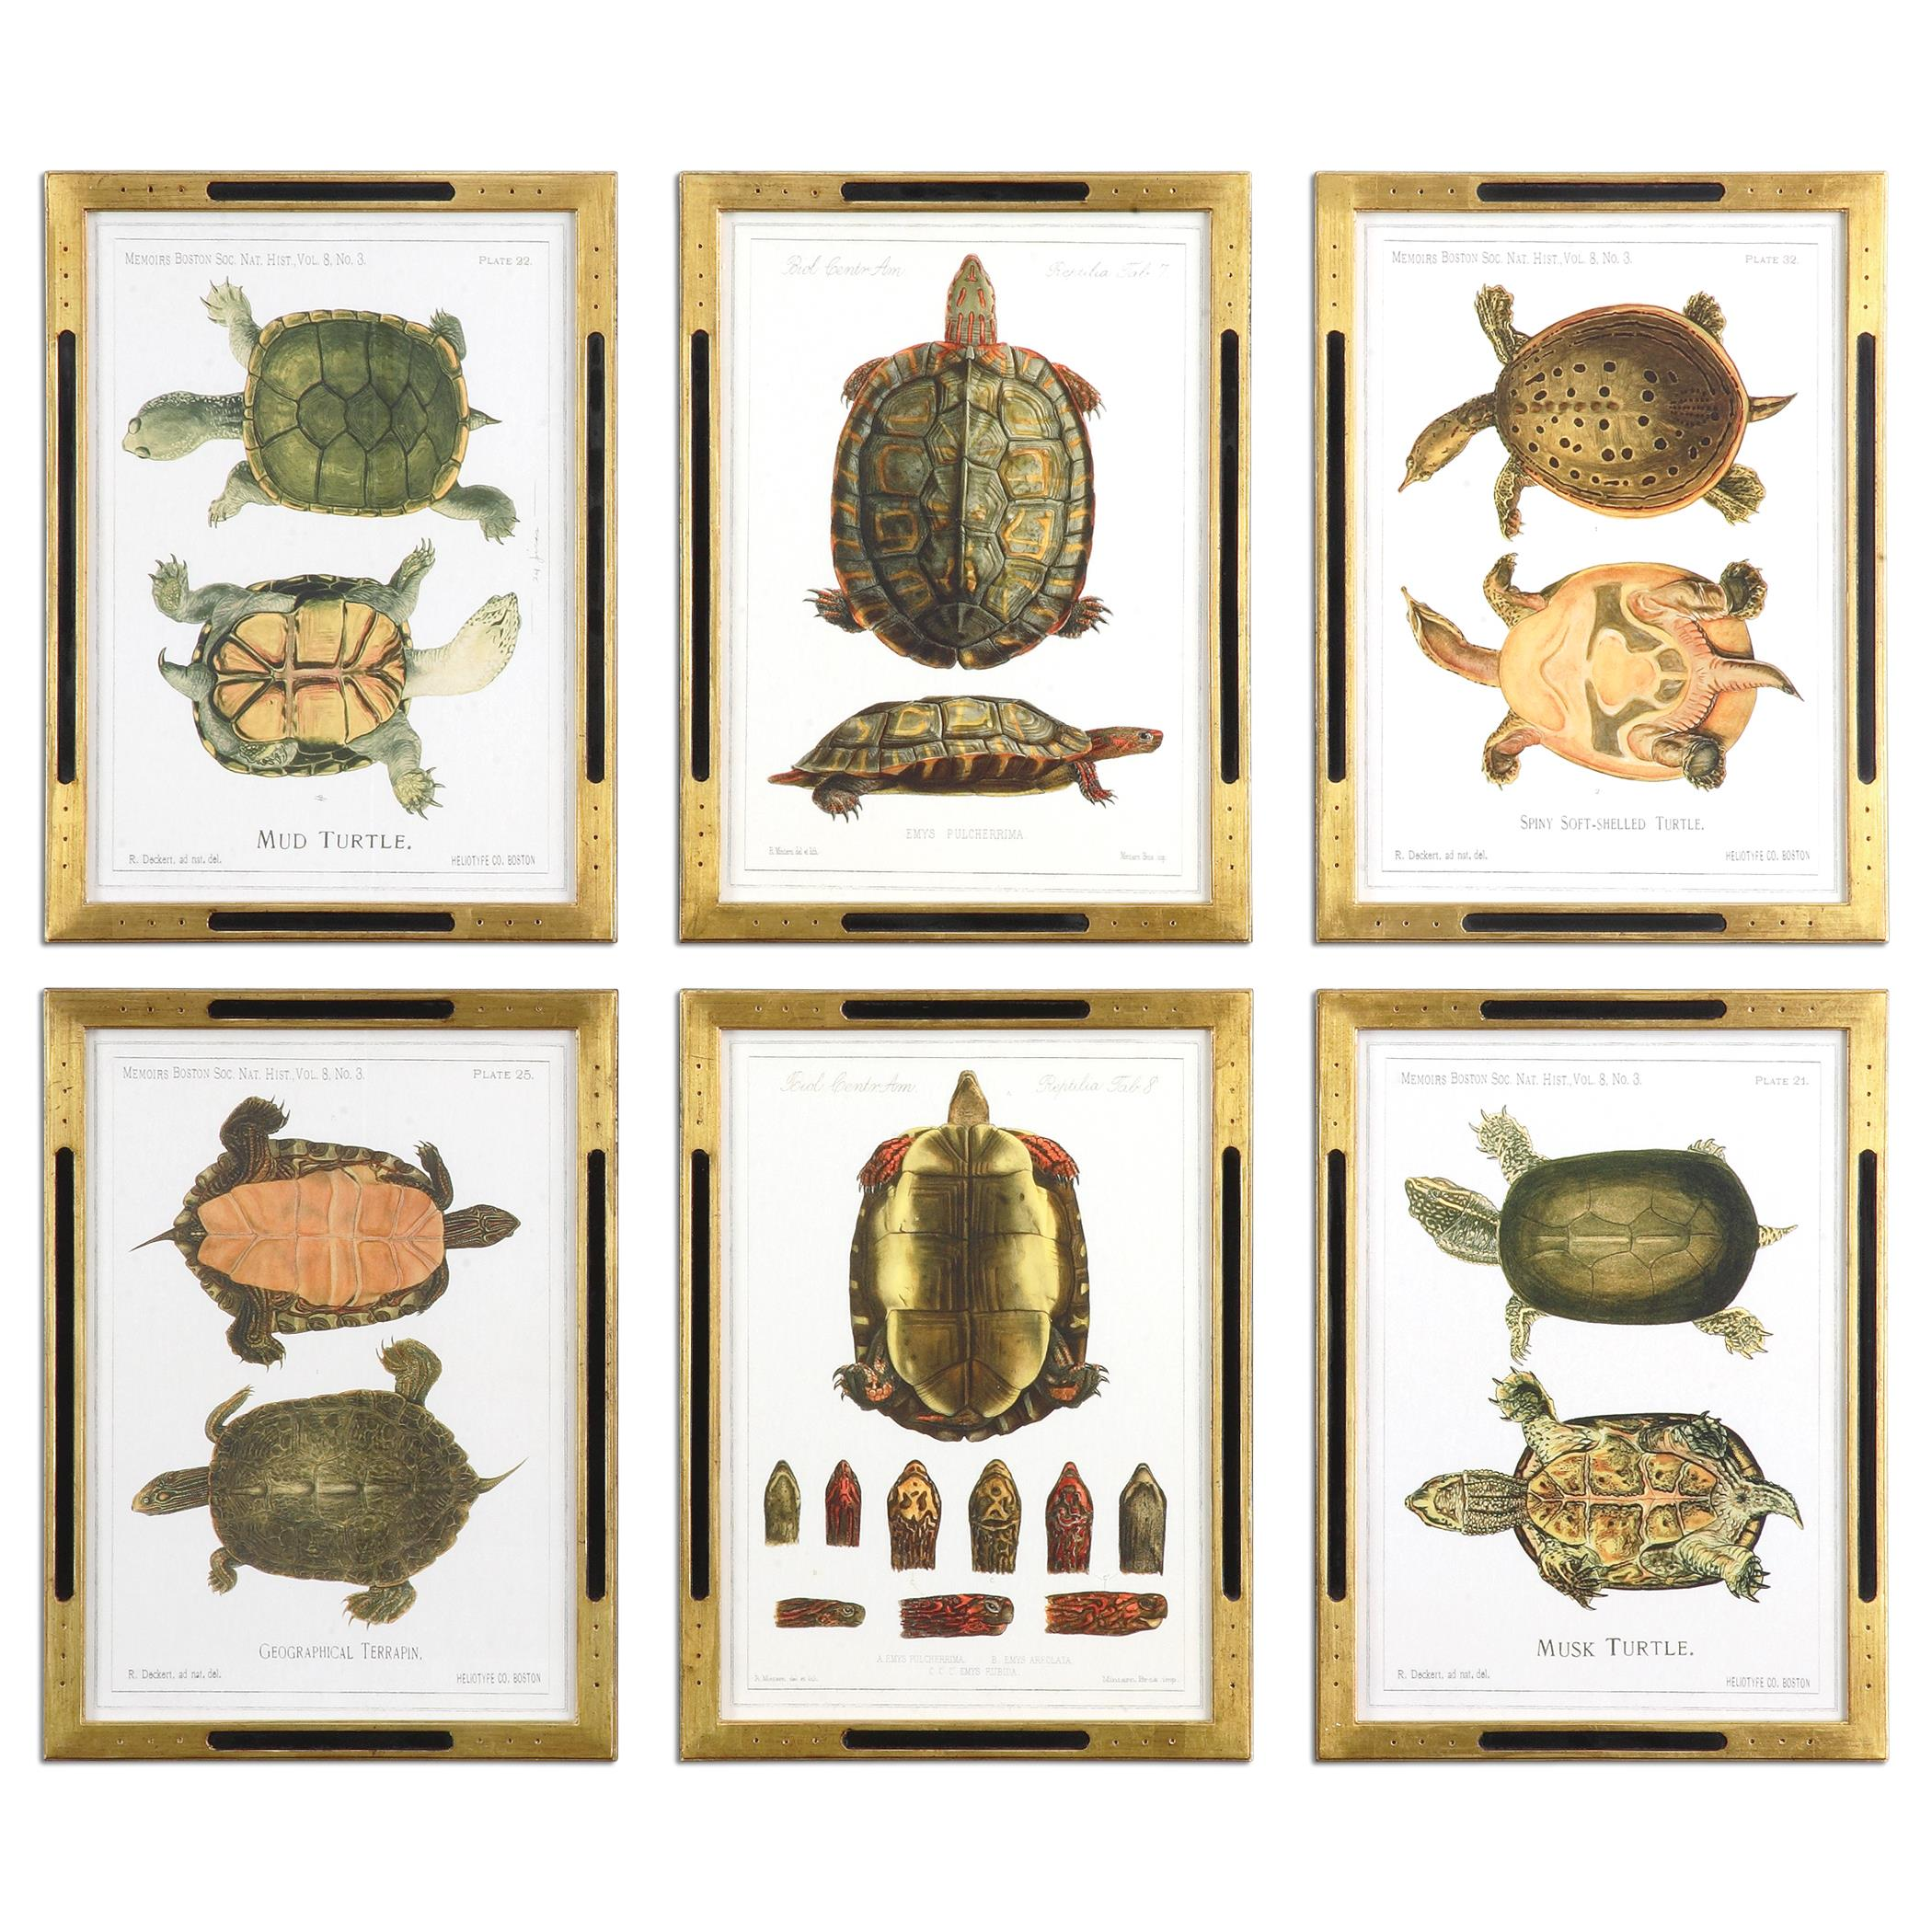 Uttermost Art Tortoise Study Framed Art, S/6 - Item Number: 41545